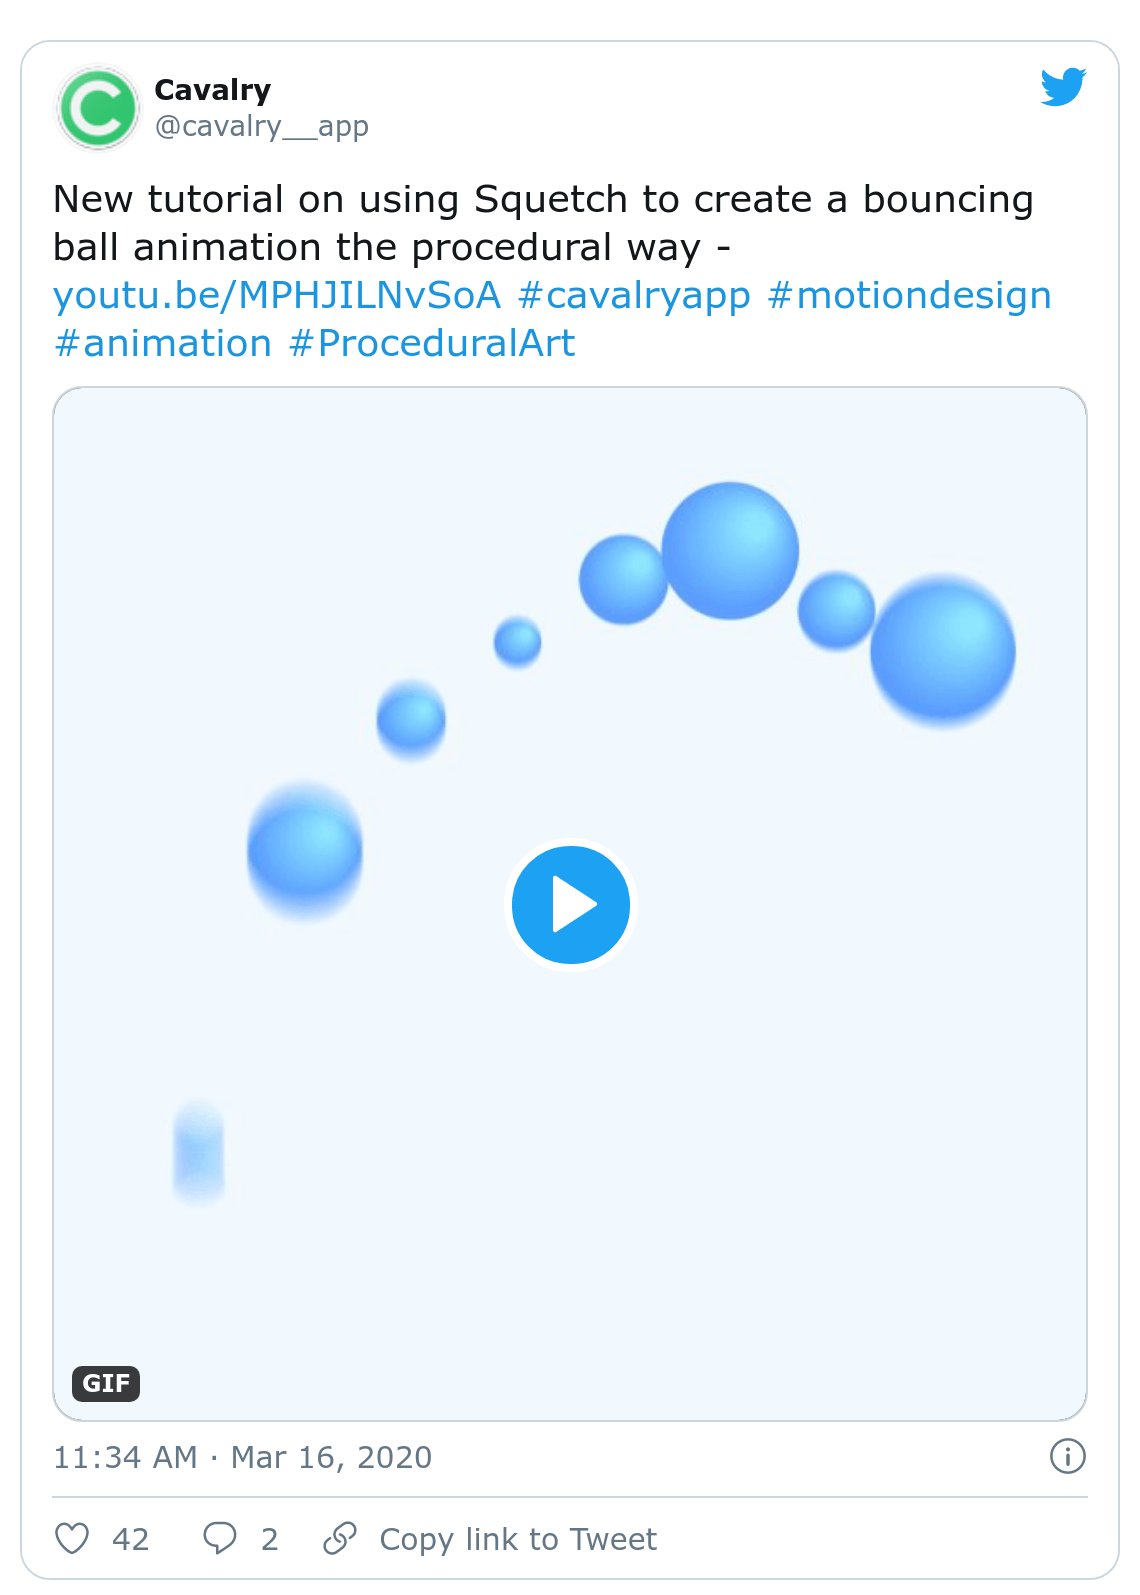 Screenshot of Cavalry tweet about boucing ball animation